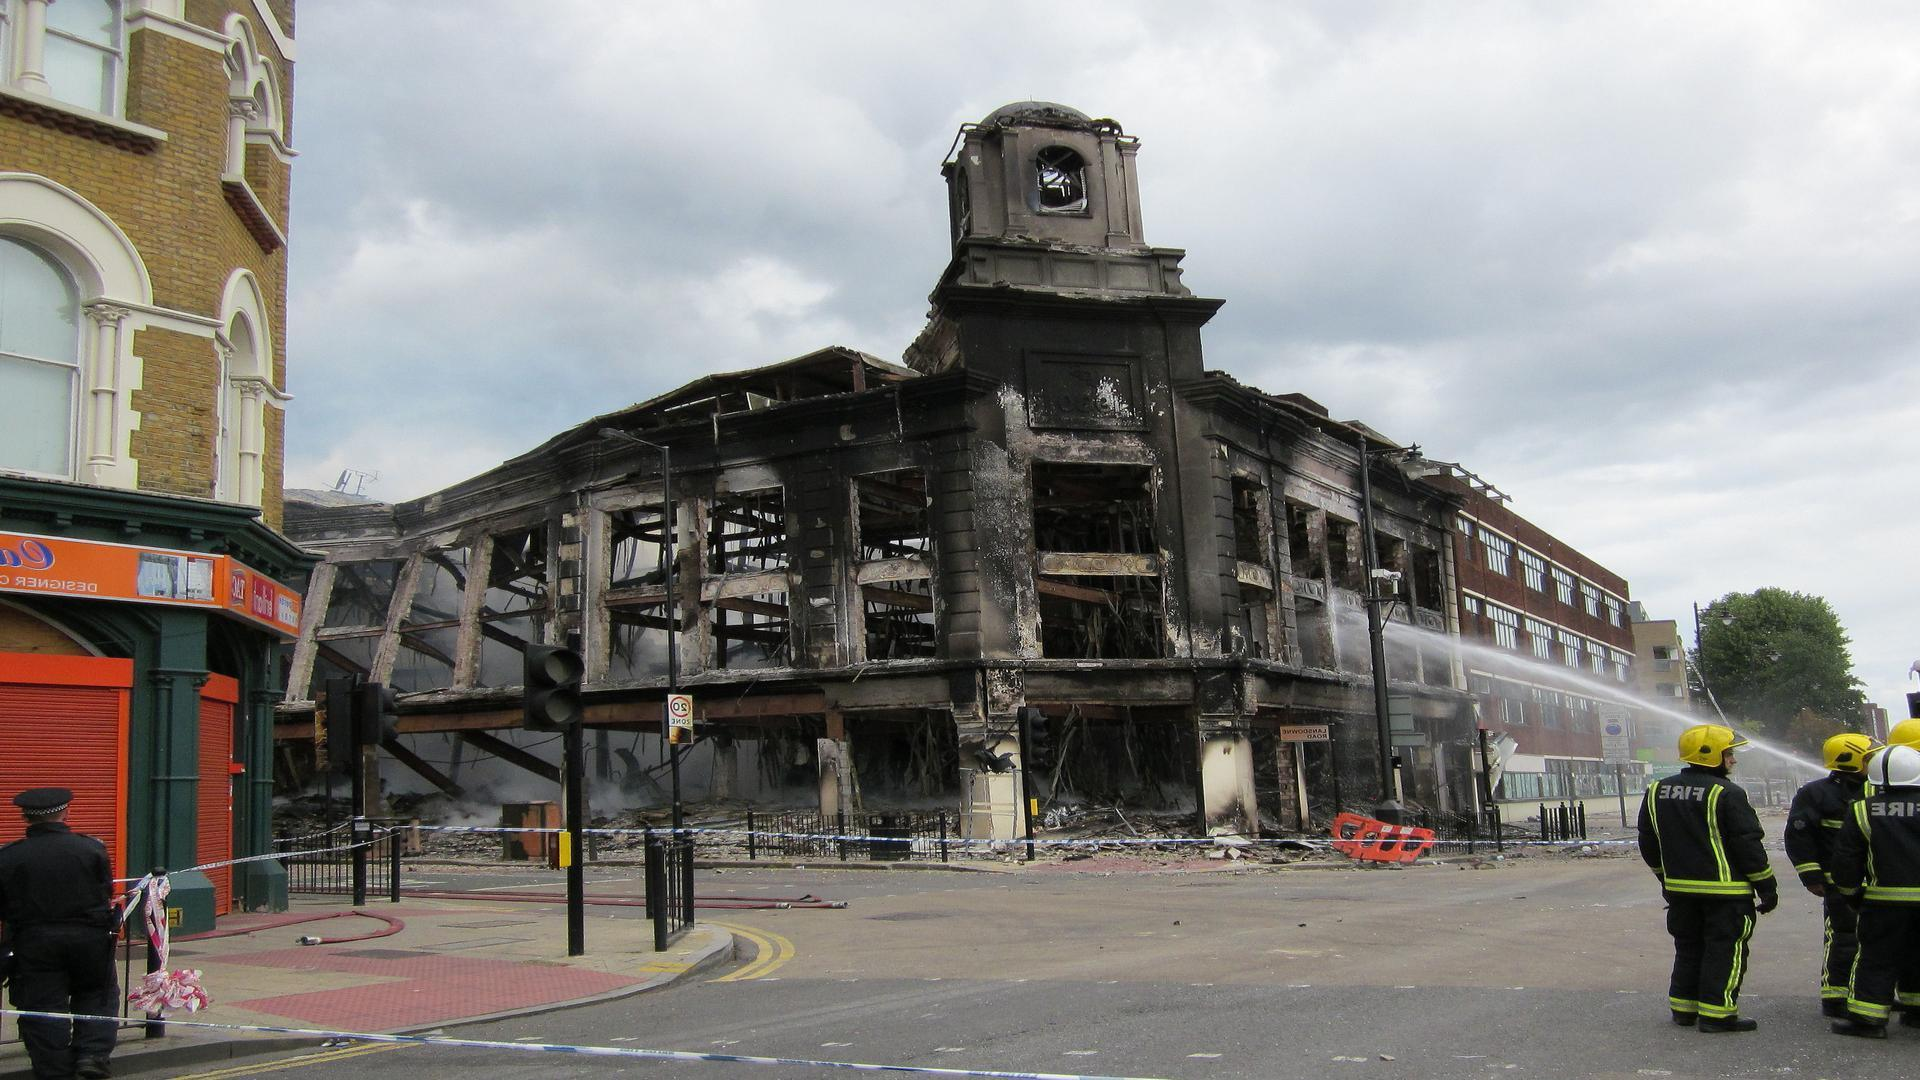 The England Riots Information